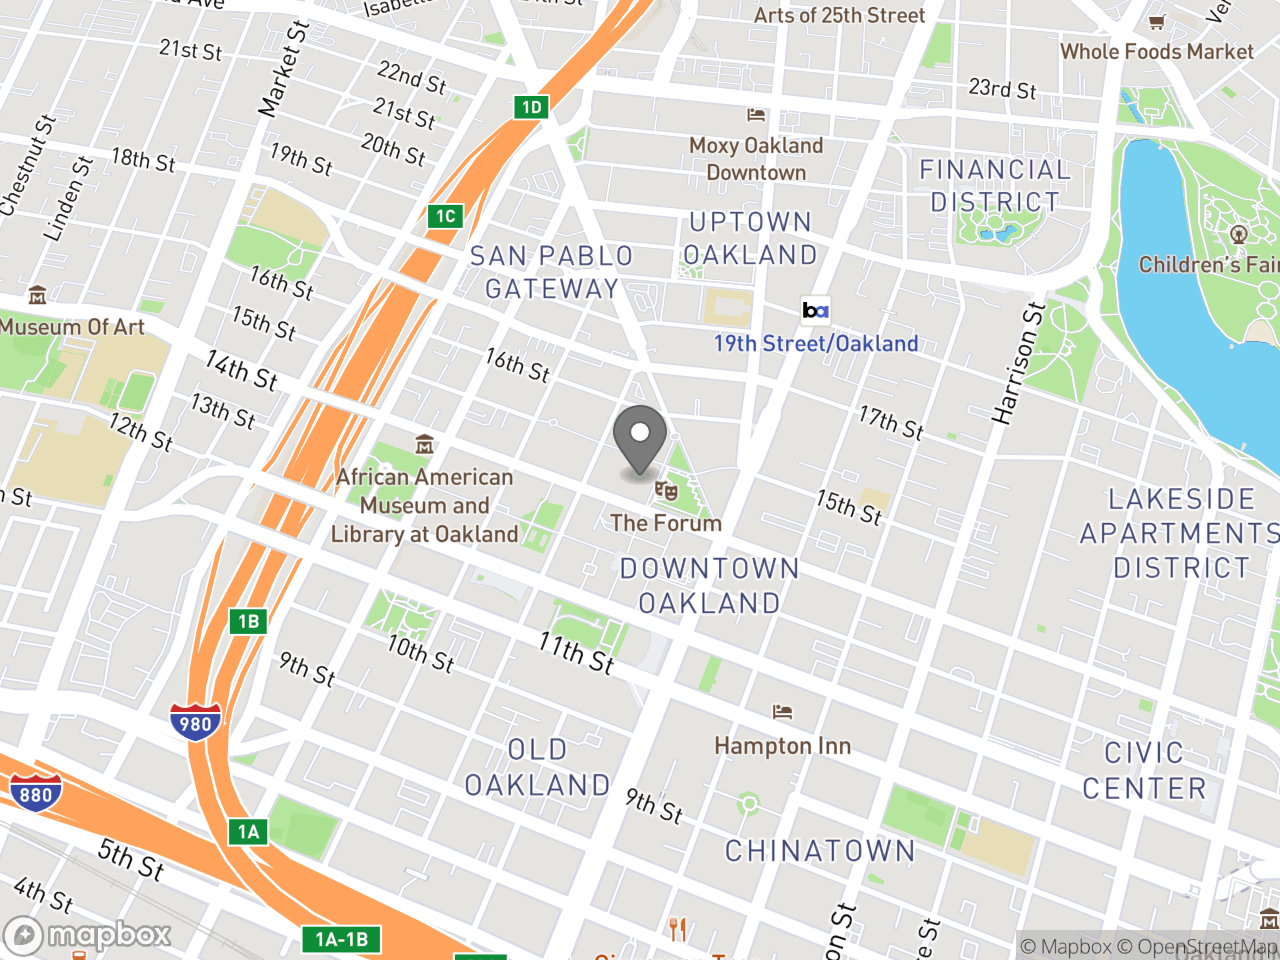 Map location for Police Commission September 27, 2018, located at 1 Frank H Ogawa Plaza in Oakland, CA 94612